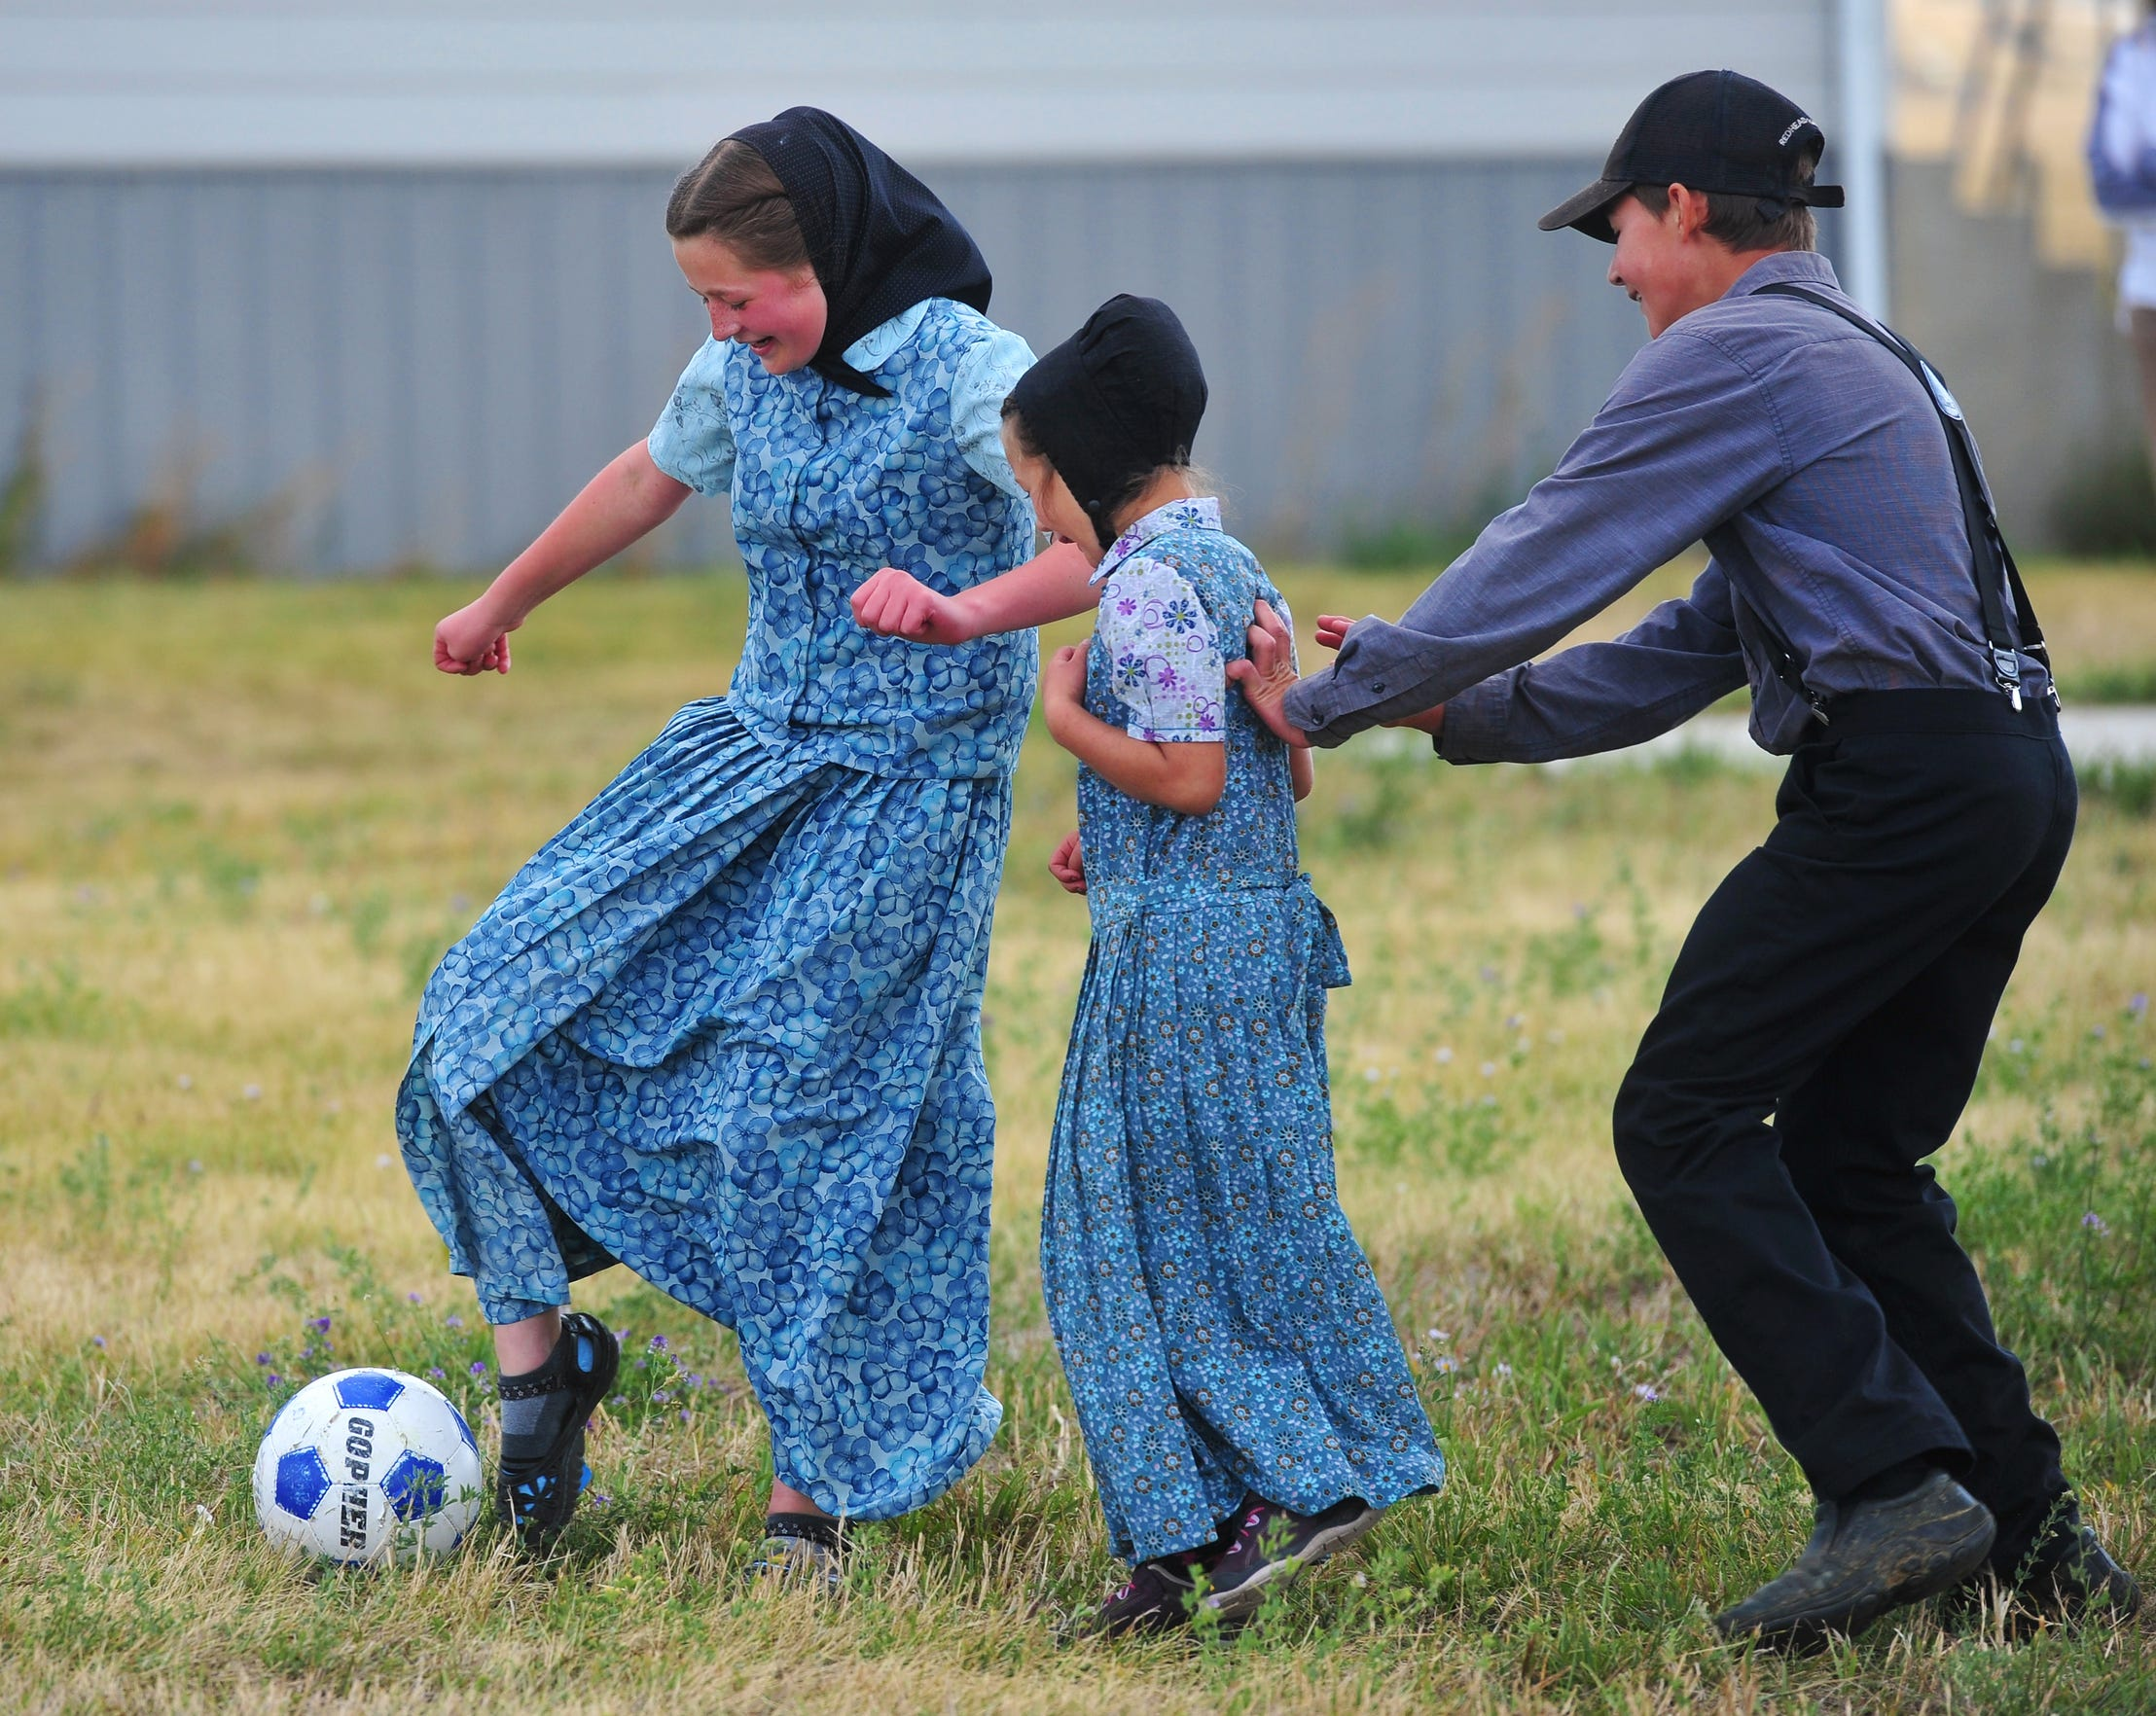 Geena Stahl, left, Amber Stahl, center, and Austin Stahl play soccer at recess at Deerfield School.